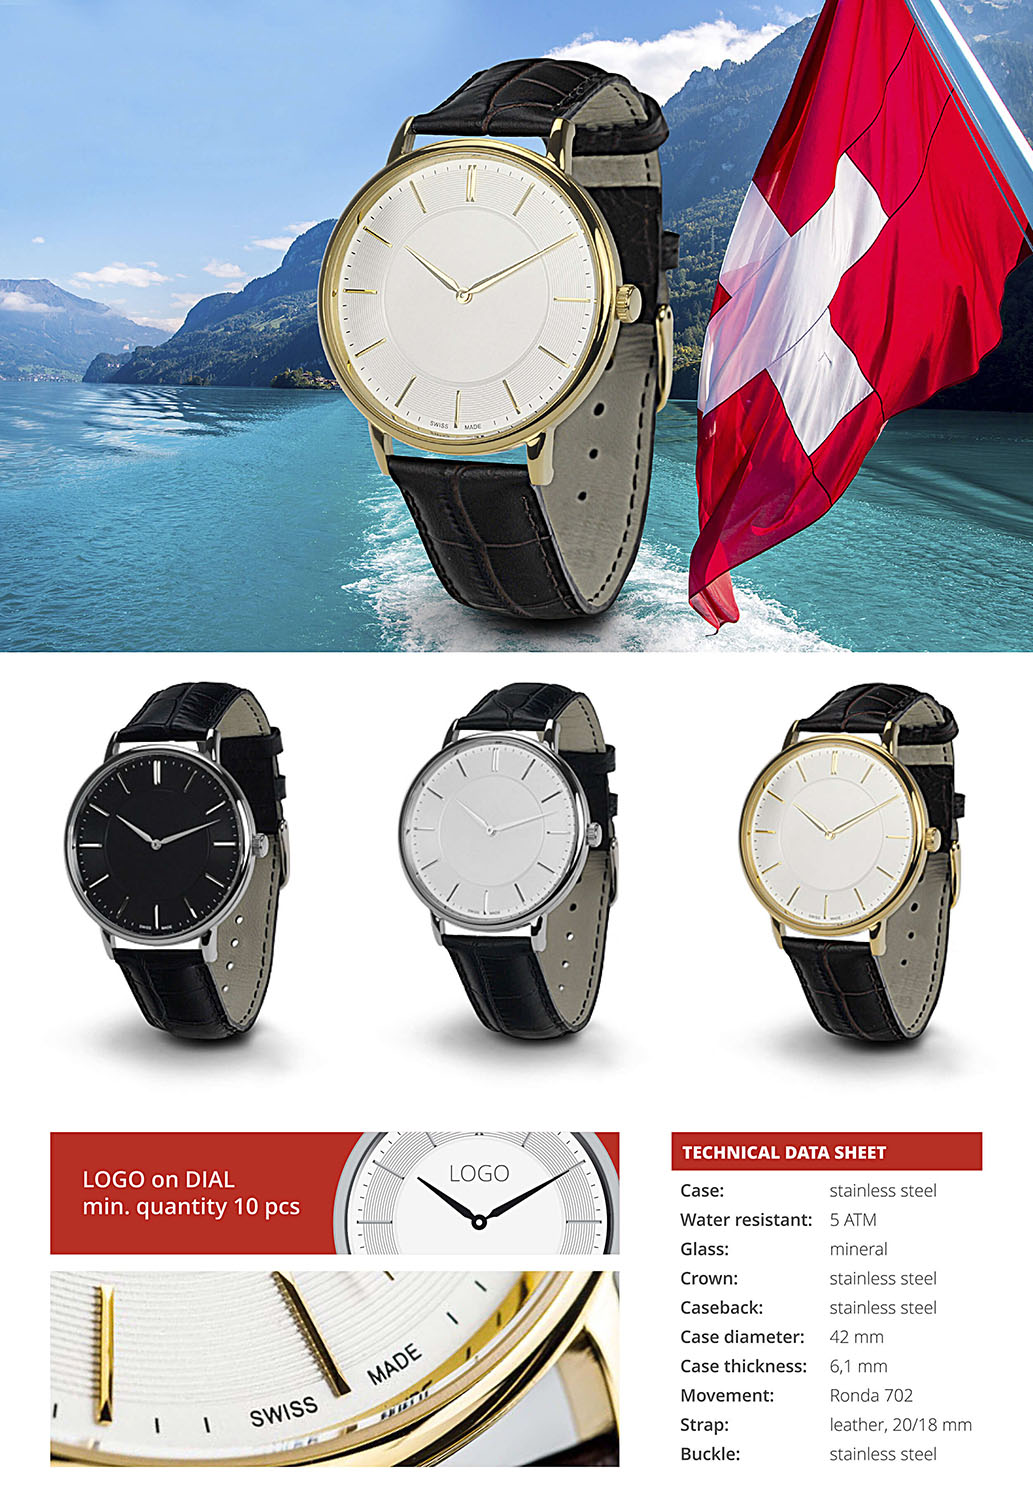 Watch Livigno. Glass: mineral, Crown: stainless steel and wter resistant